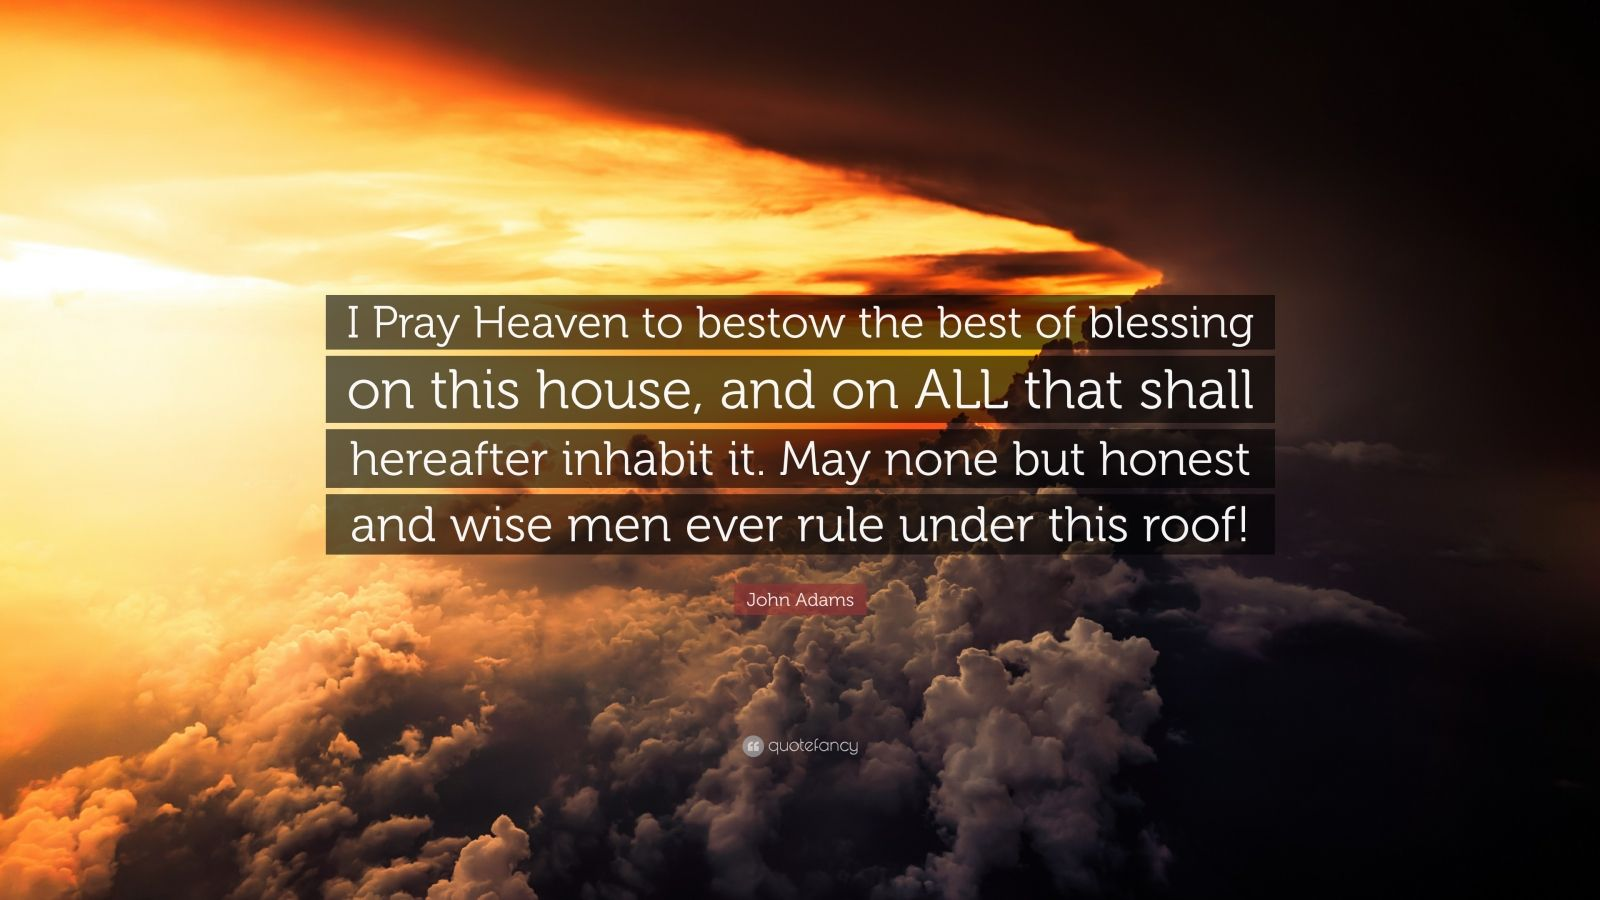 "John Adams Quote: ""I Pray Heaven to bestow the best of blessing on this house, and on ALL that shall hereafter inhabit it. May none but honest and wise men ever rule under this roof!"""